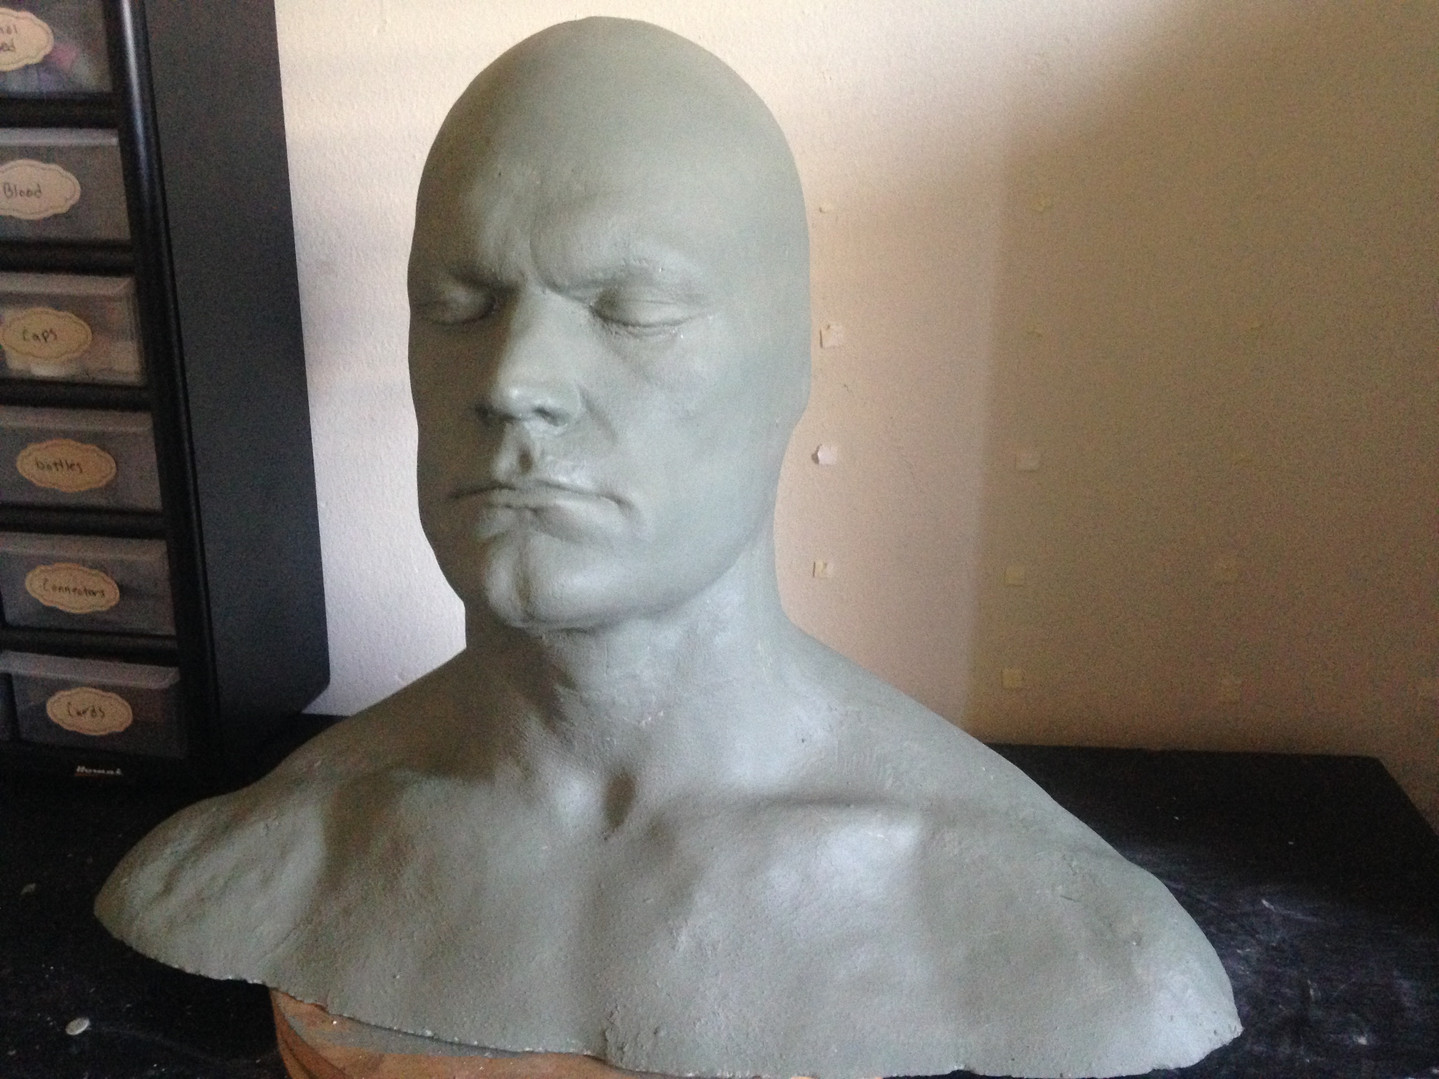 Ultracal lifecast, cleaned, detailed, and painted to prepare for sculpture